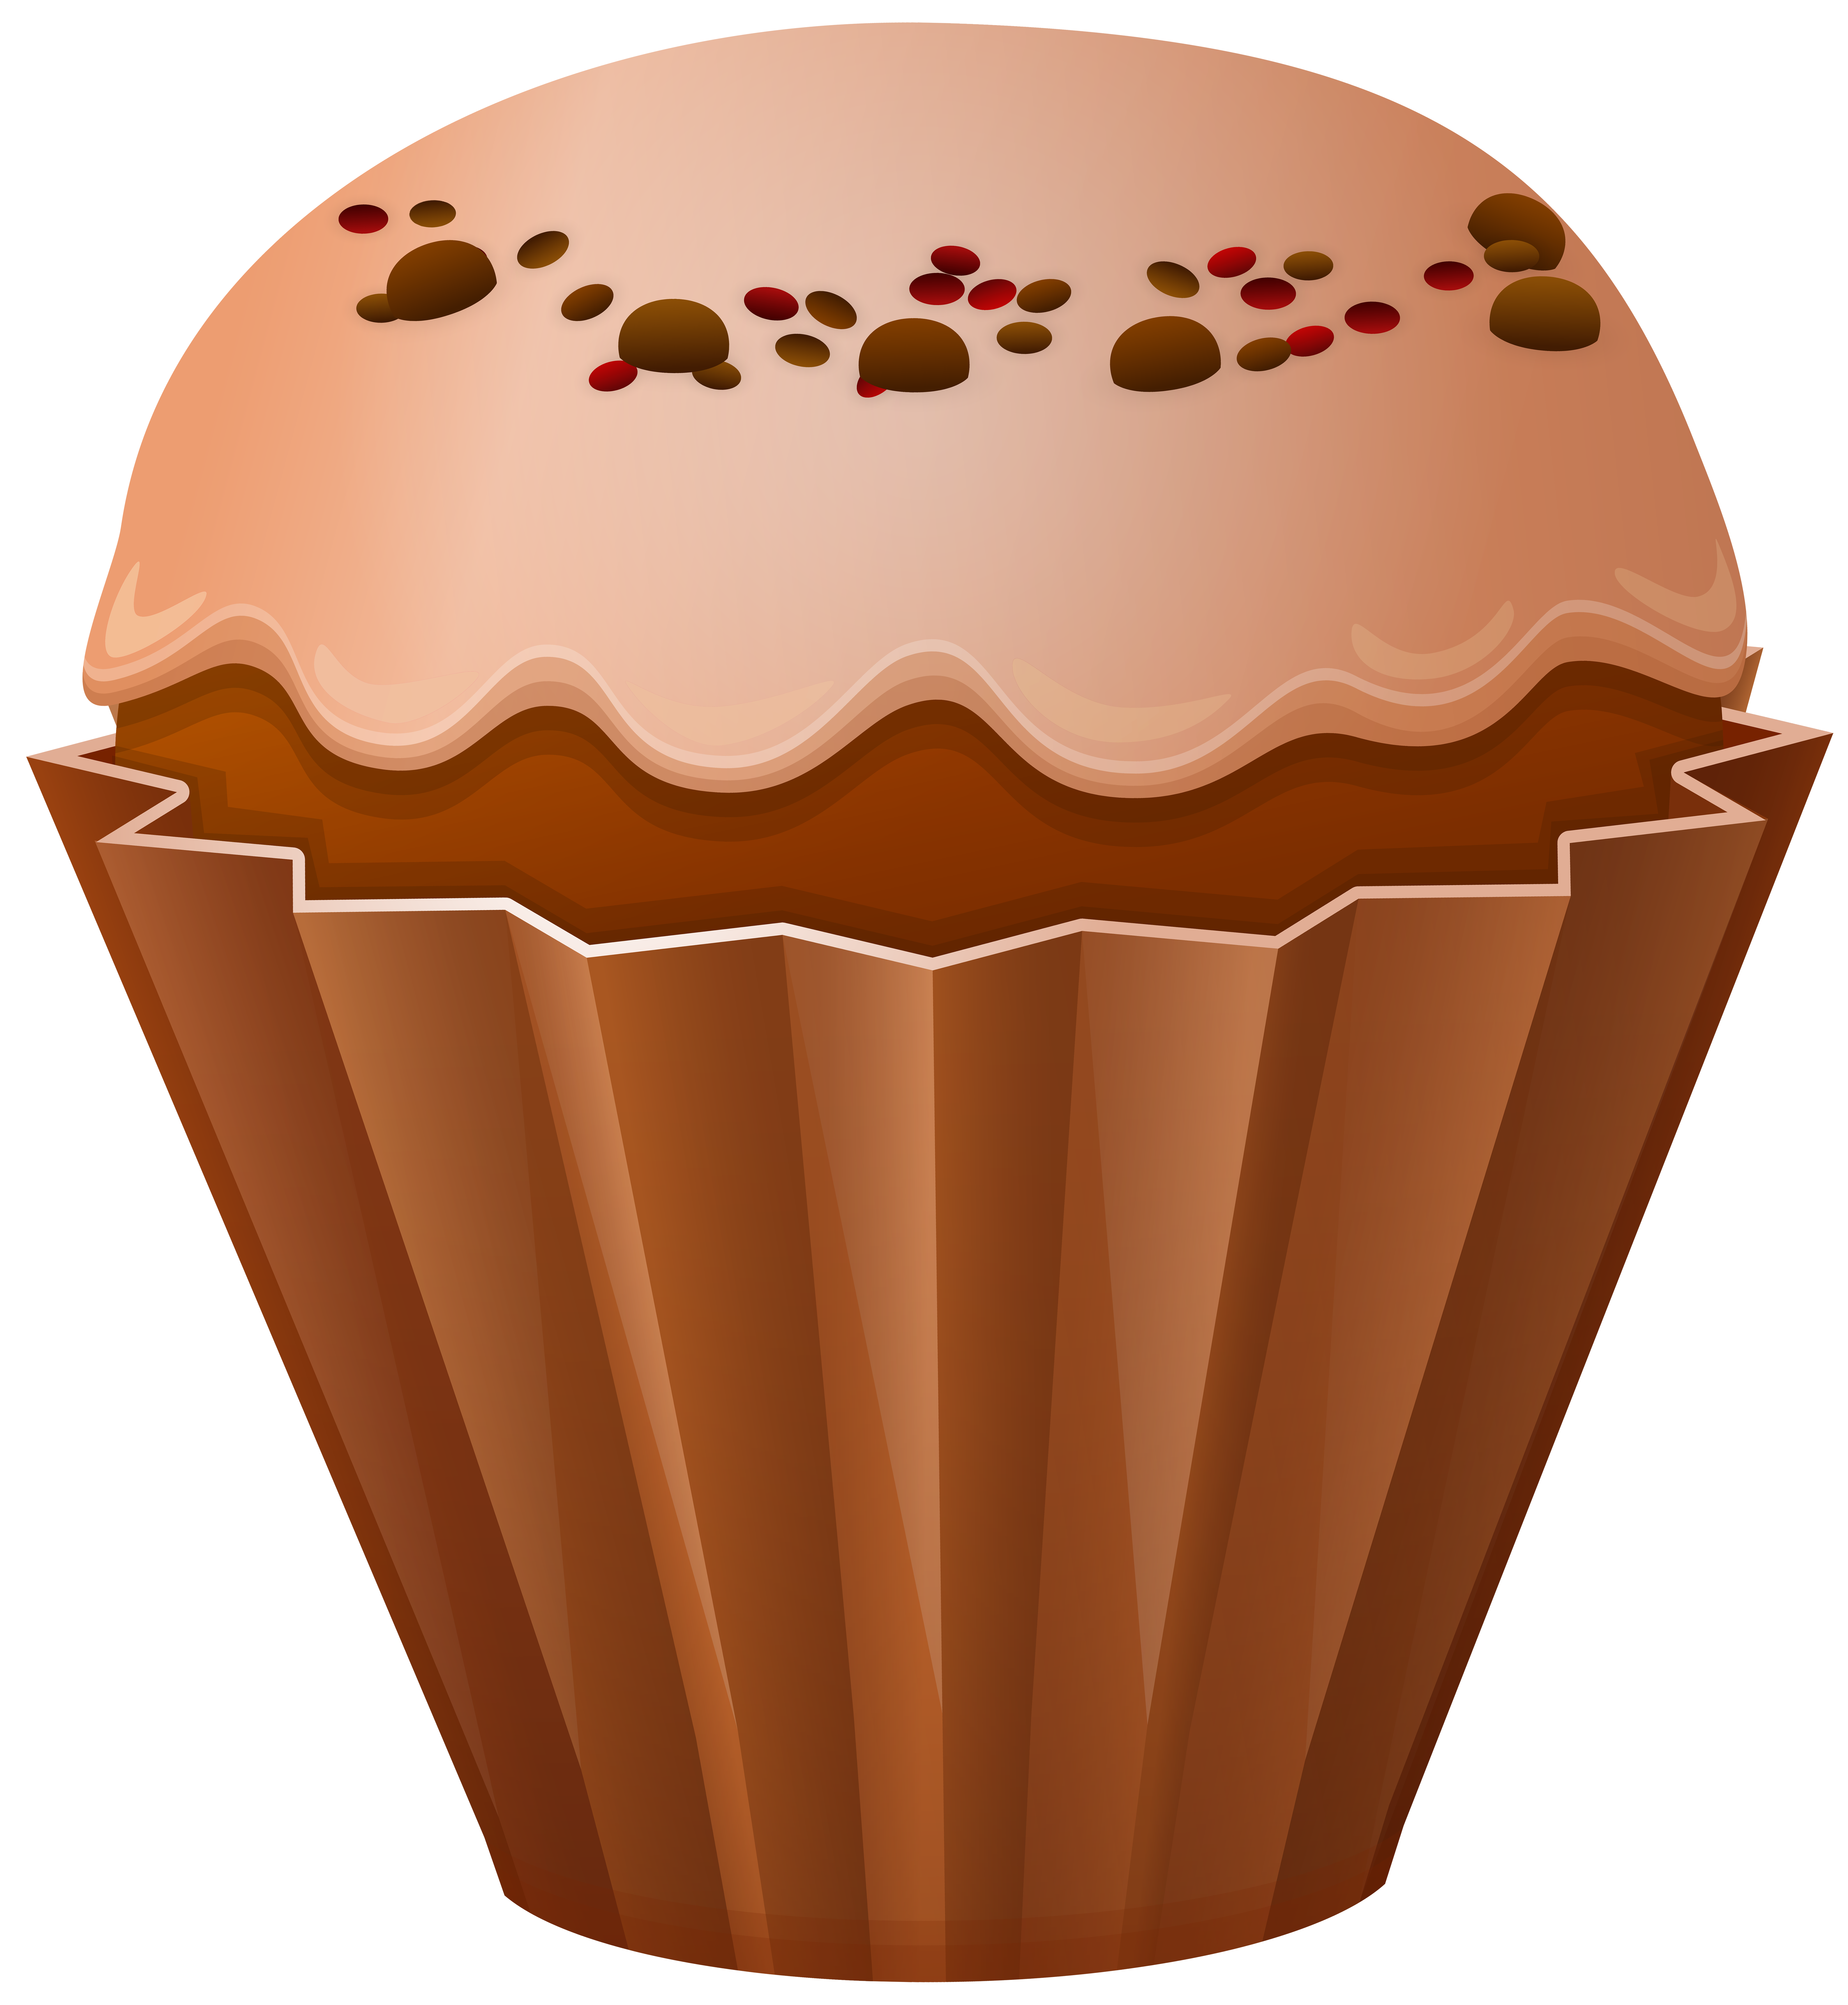 Png clip art gallery. Fruit clipart muffin